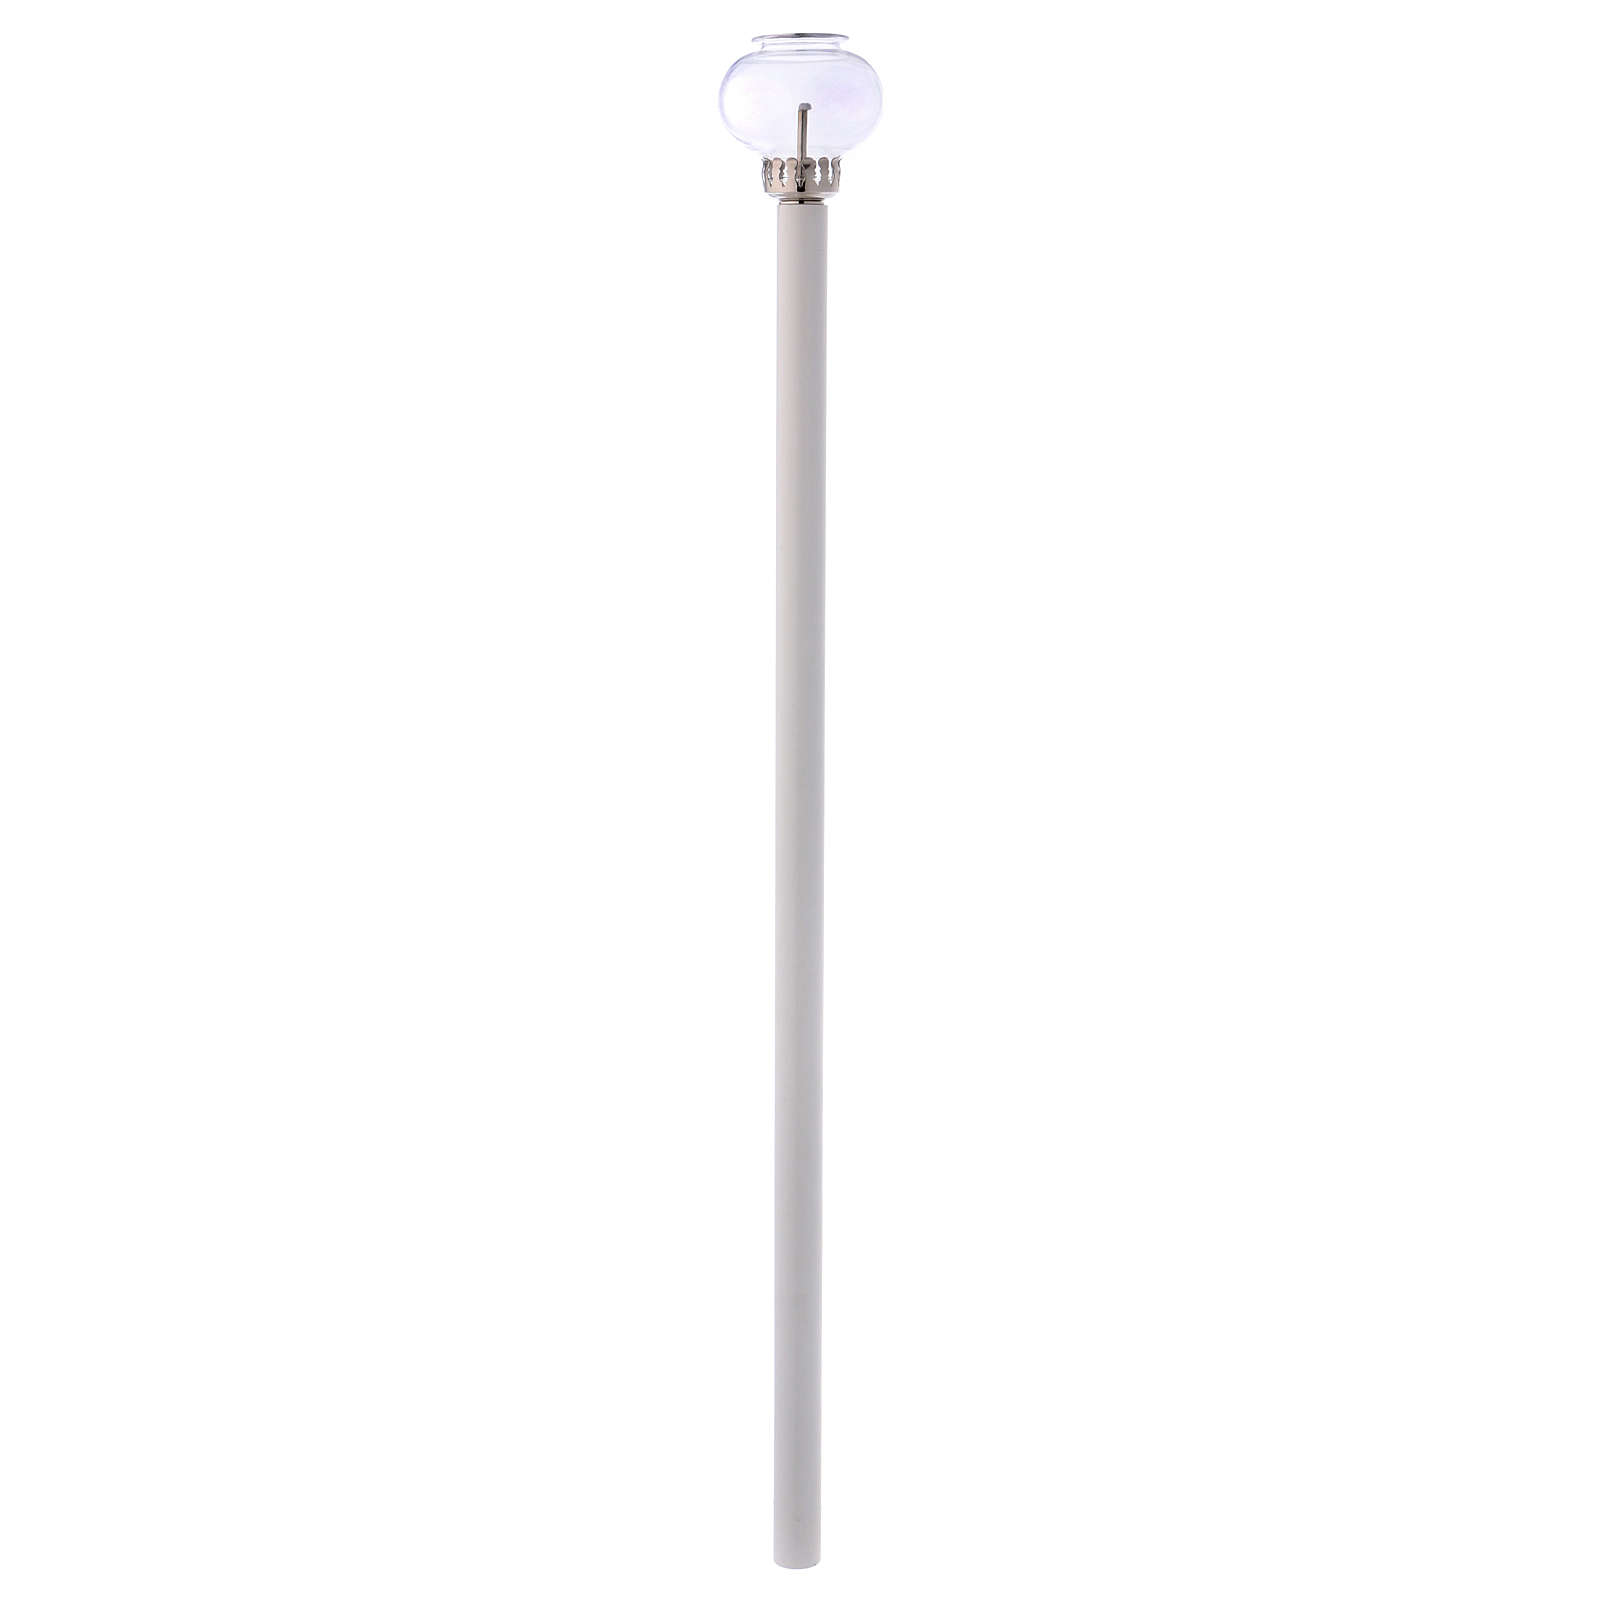 Wind-proof Processional torch 3